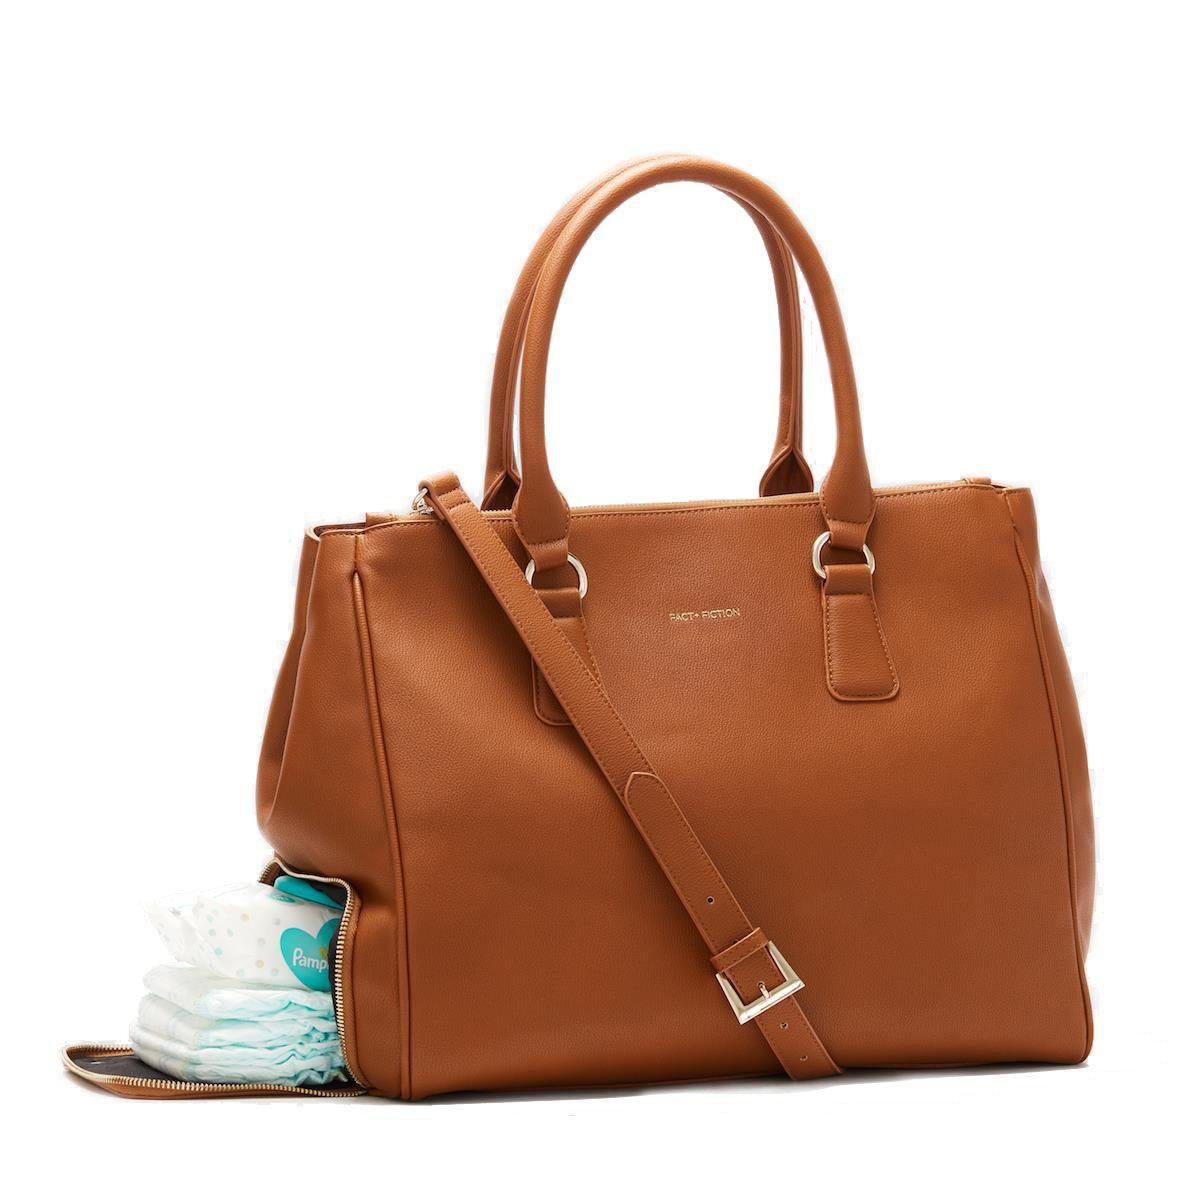 Stylish baby bag with compartments